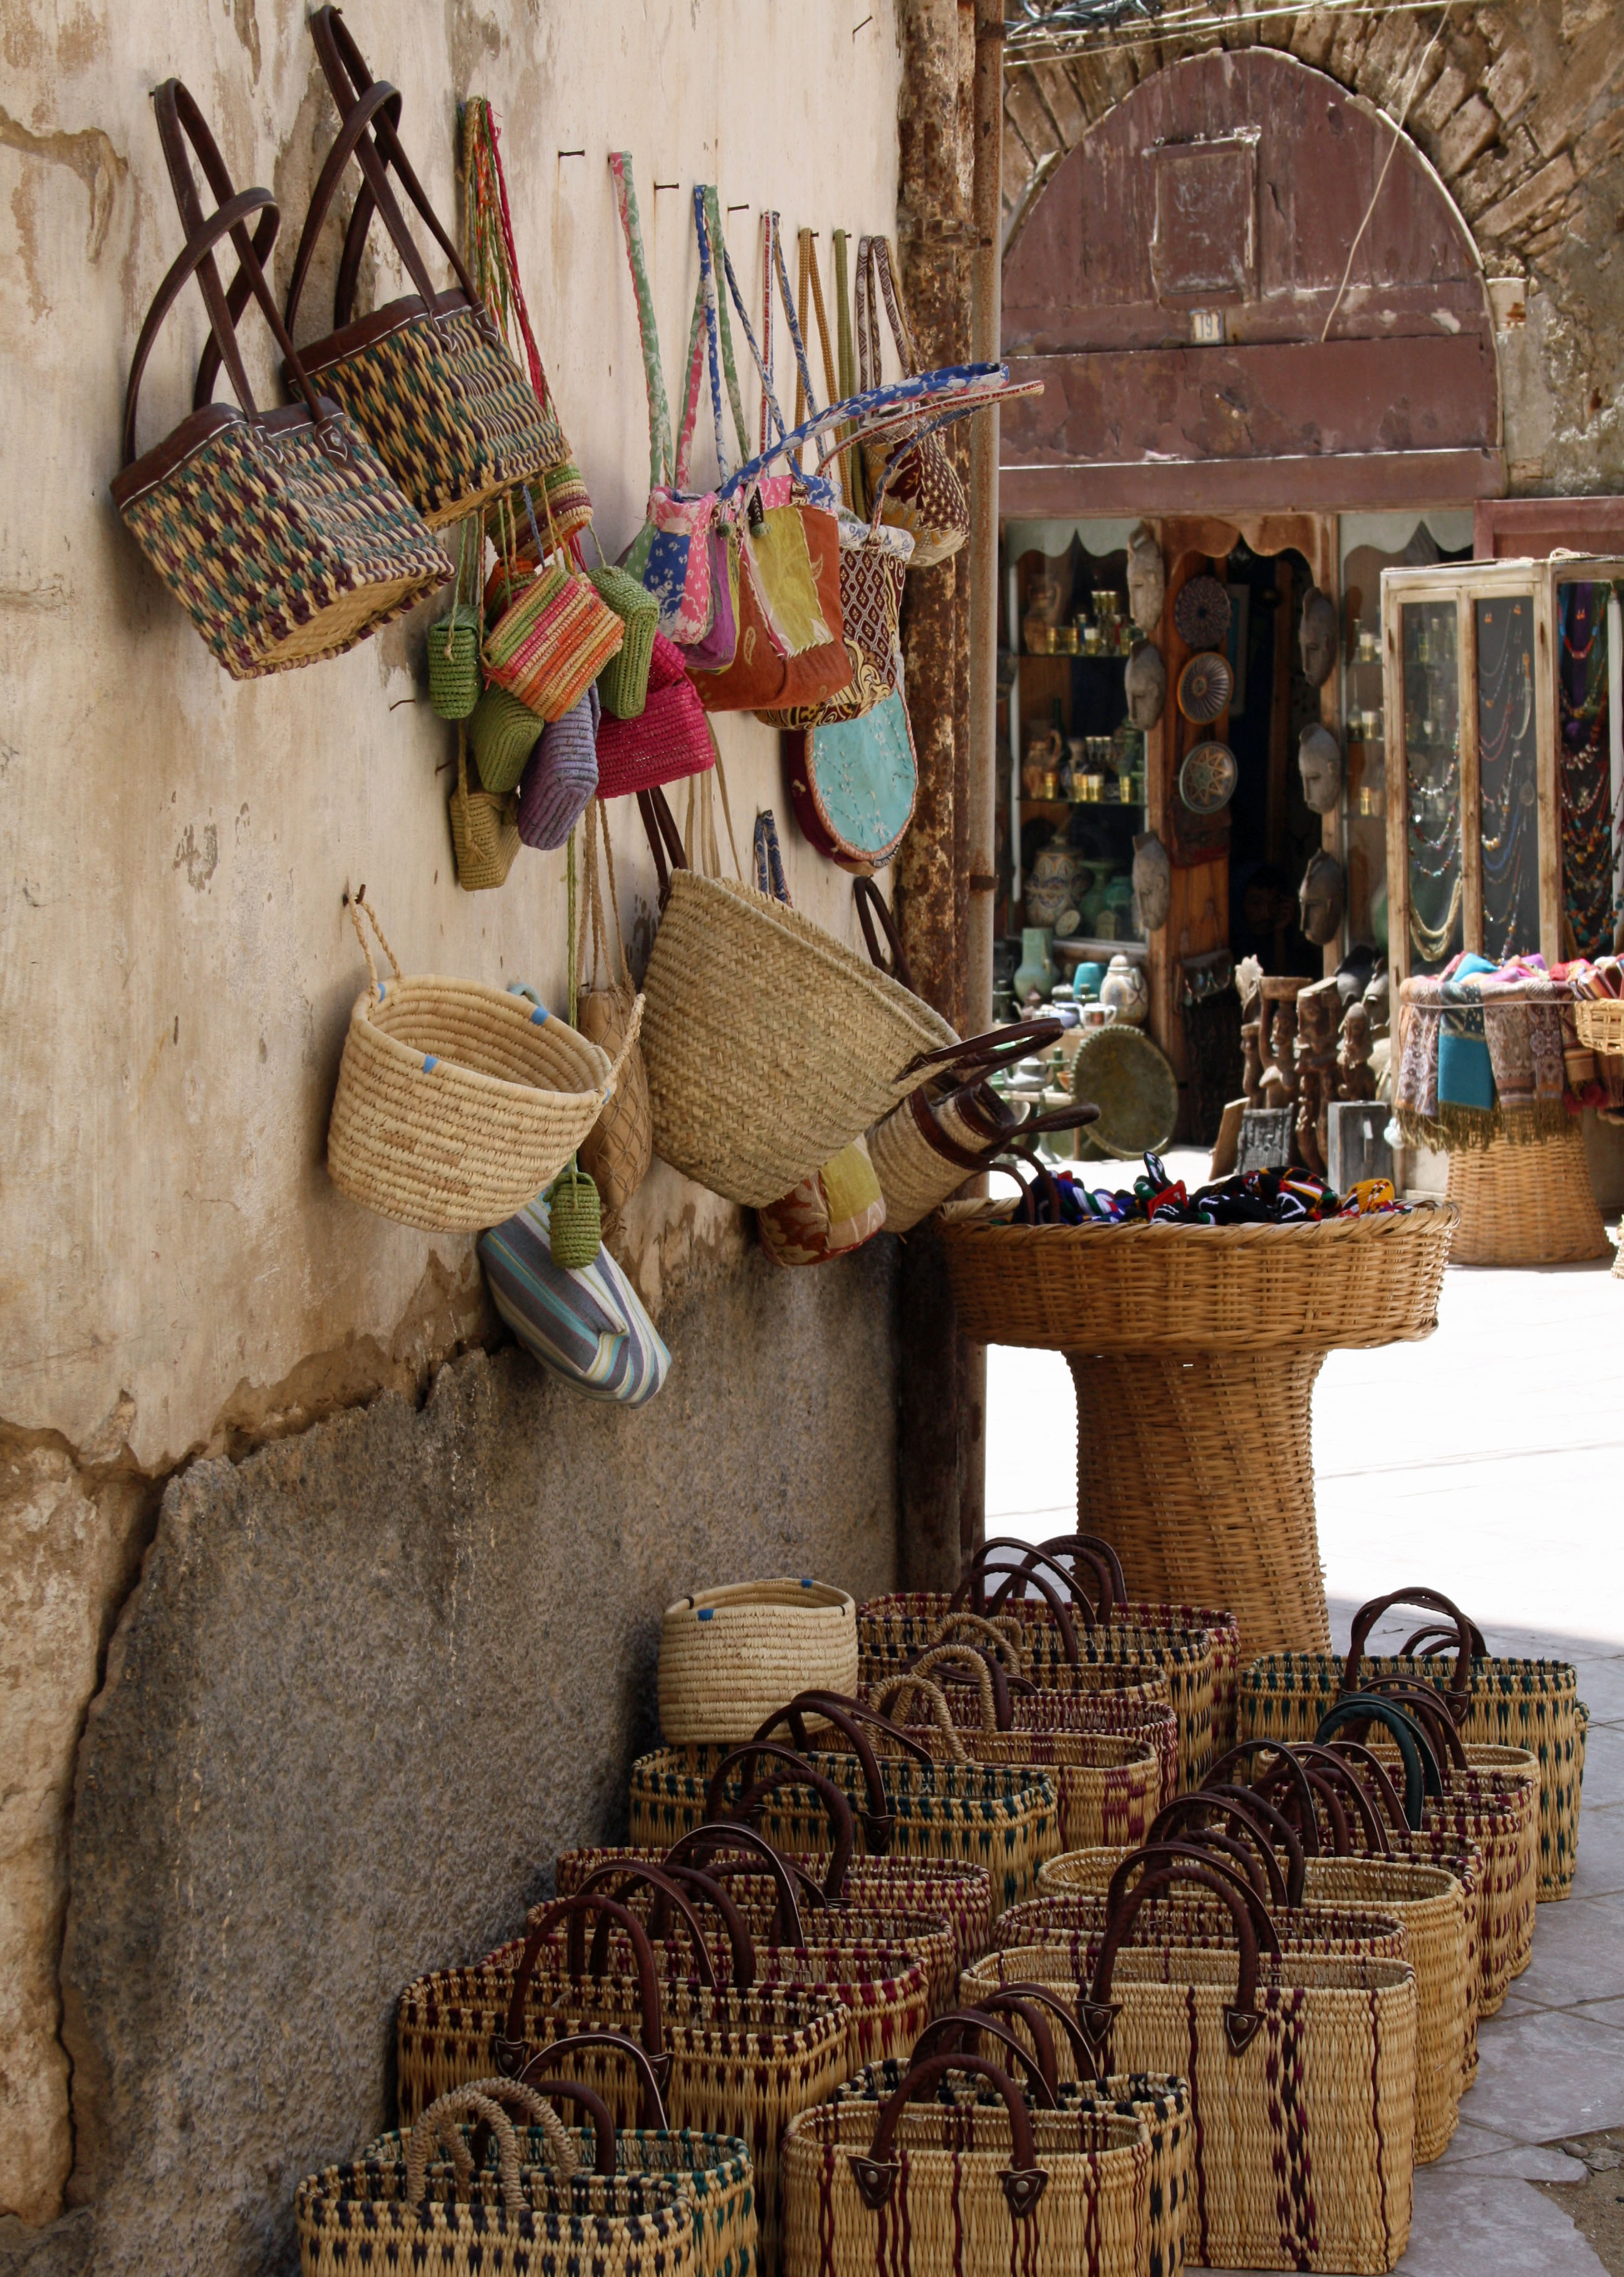 Woven bags in souk Essaouira| The Spot Morocco,Taghazout, surf Morocco, where to surf in Morocco, surf camp Morocco, surfing Morocco, Morocco surf